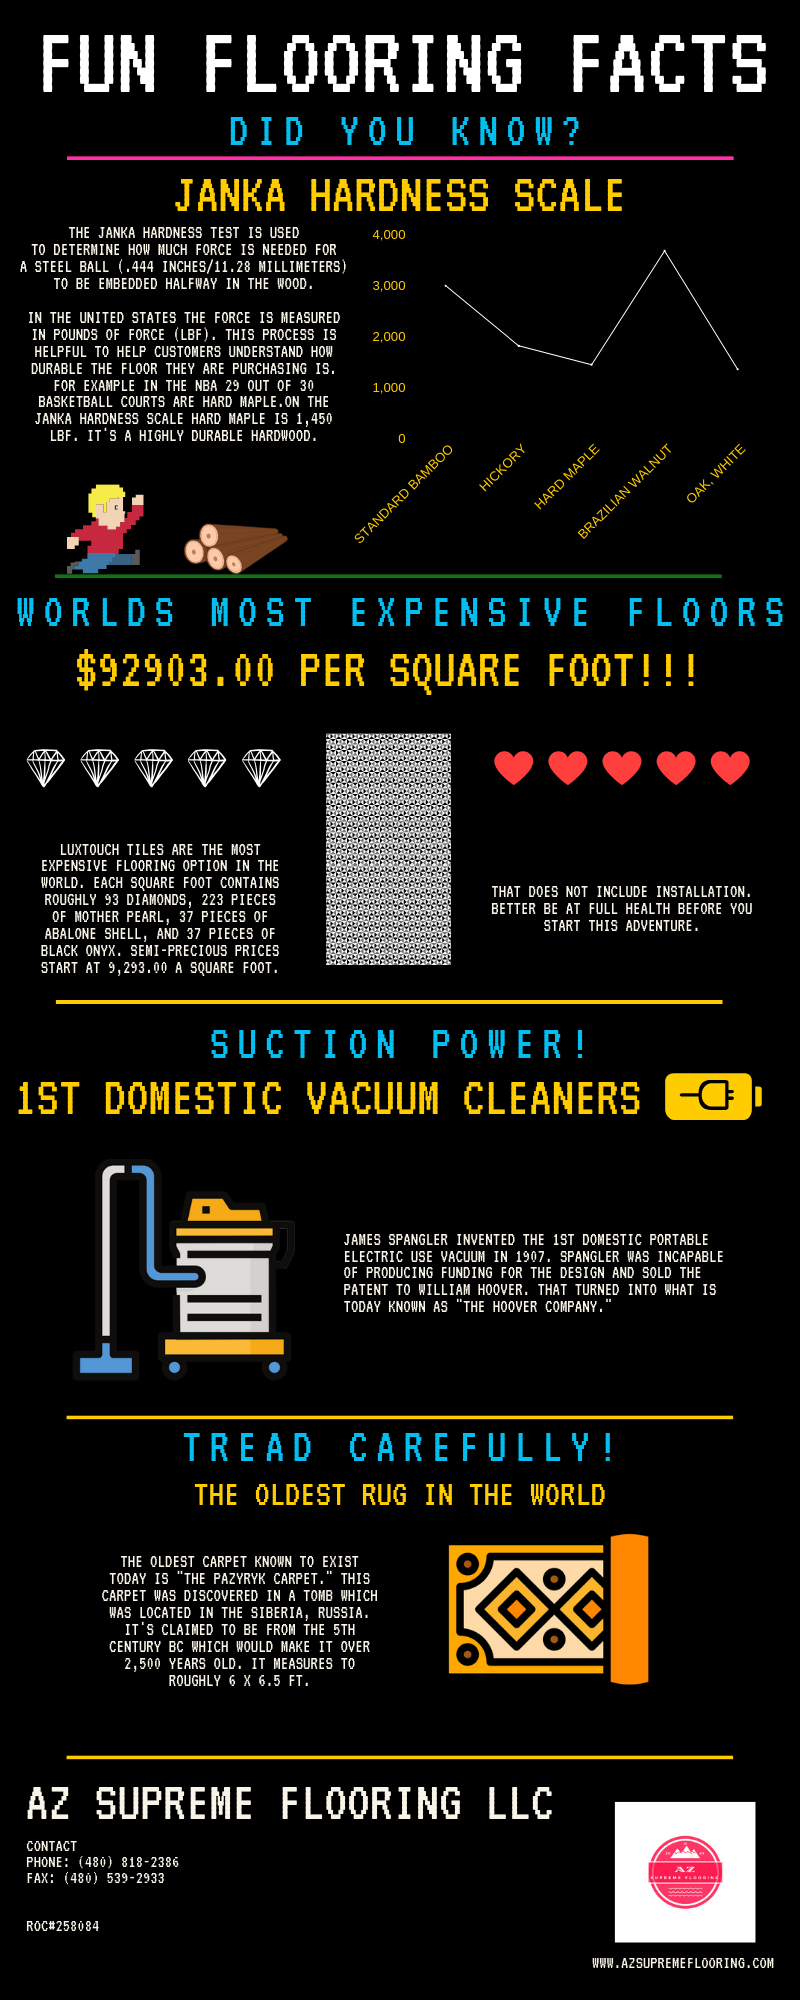 Most Expensive Flooring